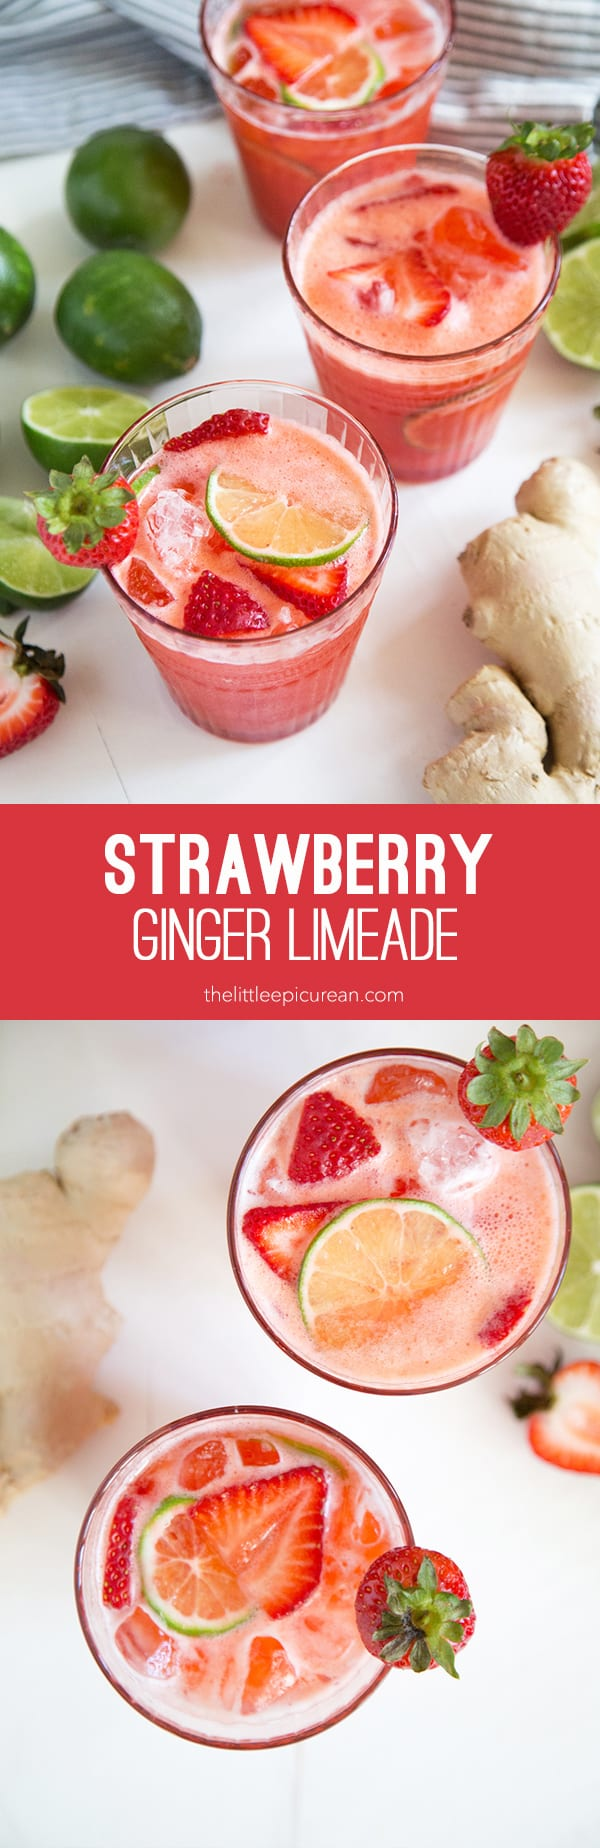 Strawberry Ginger Limeade - The Little Epicurean